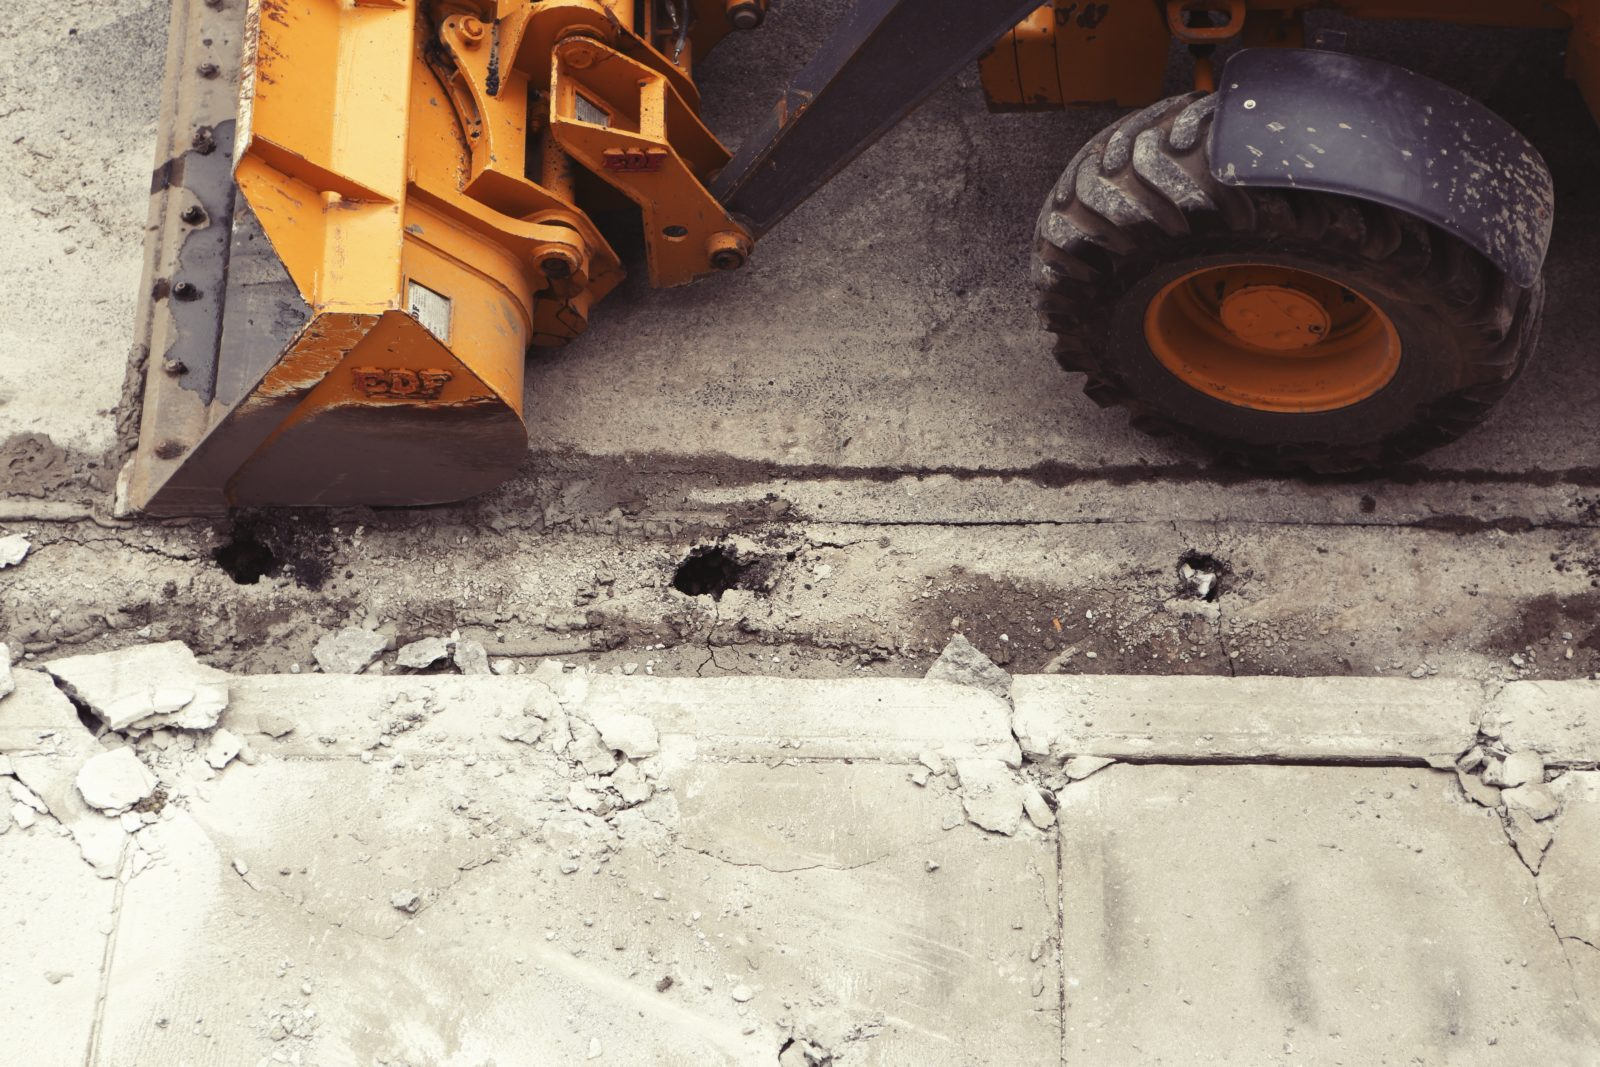 Newcastle Demolition - Why Safety is Important on Construction Sites